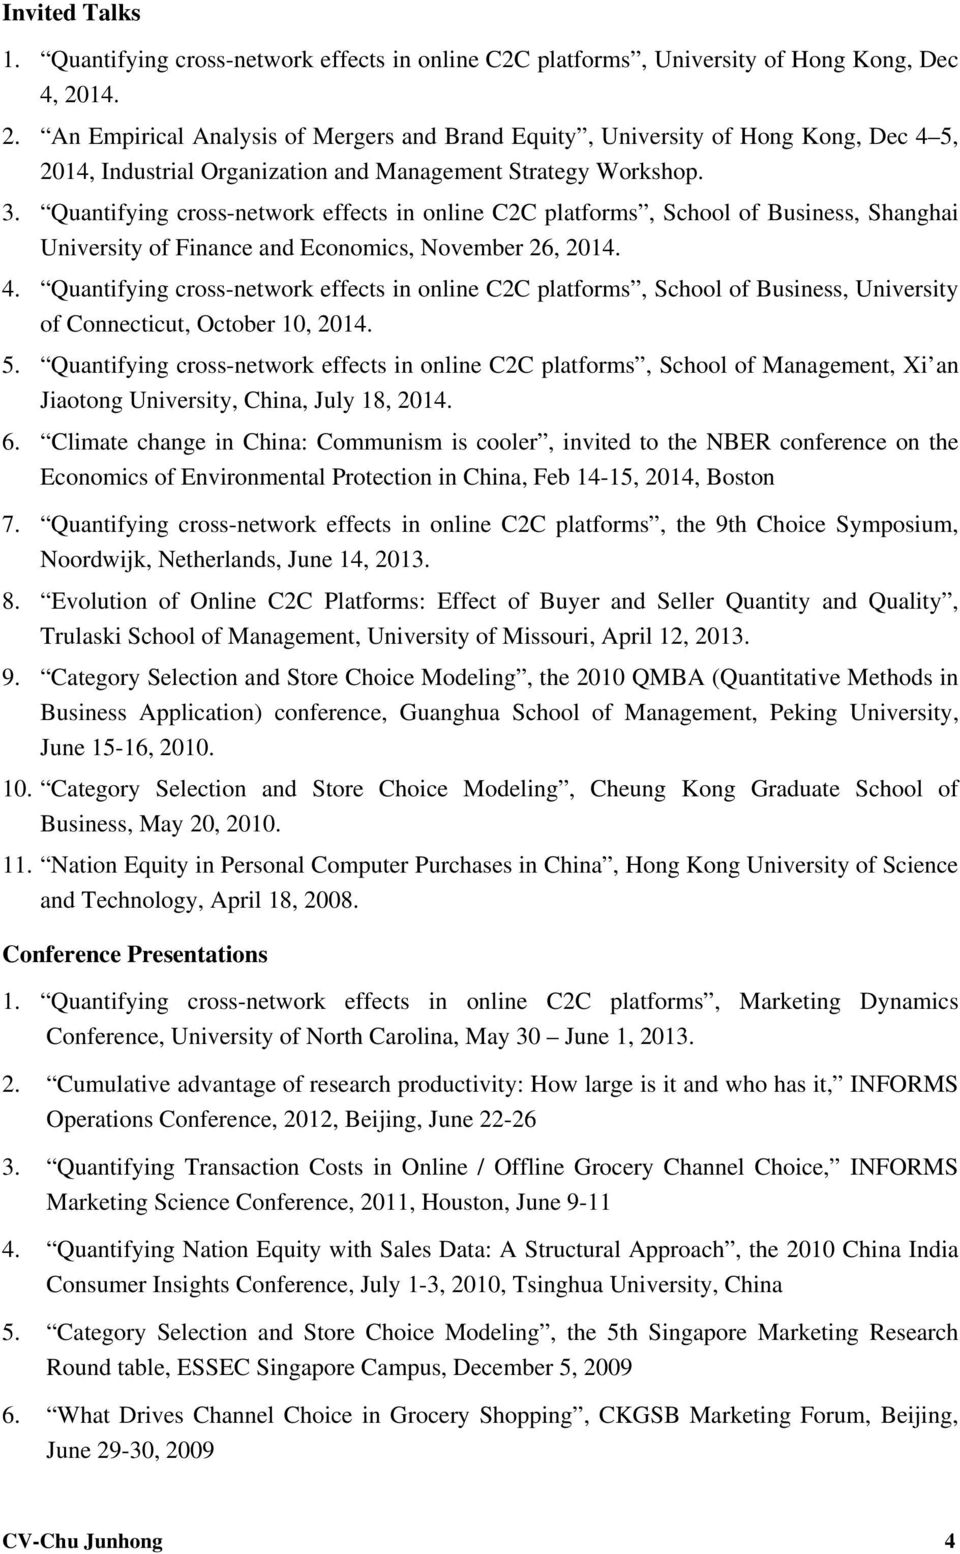 Quantifying cross-network effects in online C2C platforms, School of Business, Shanghai University of Finance and Economics, November 26, 2014. 4.